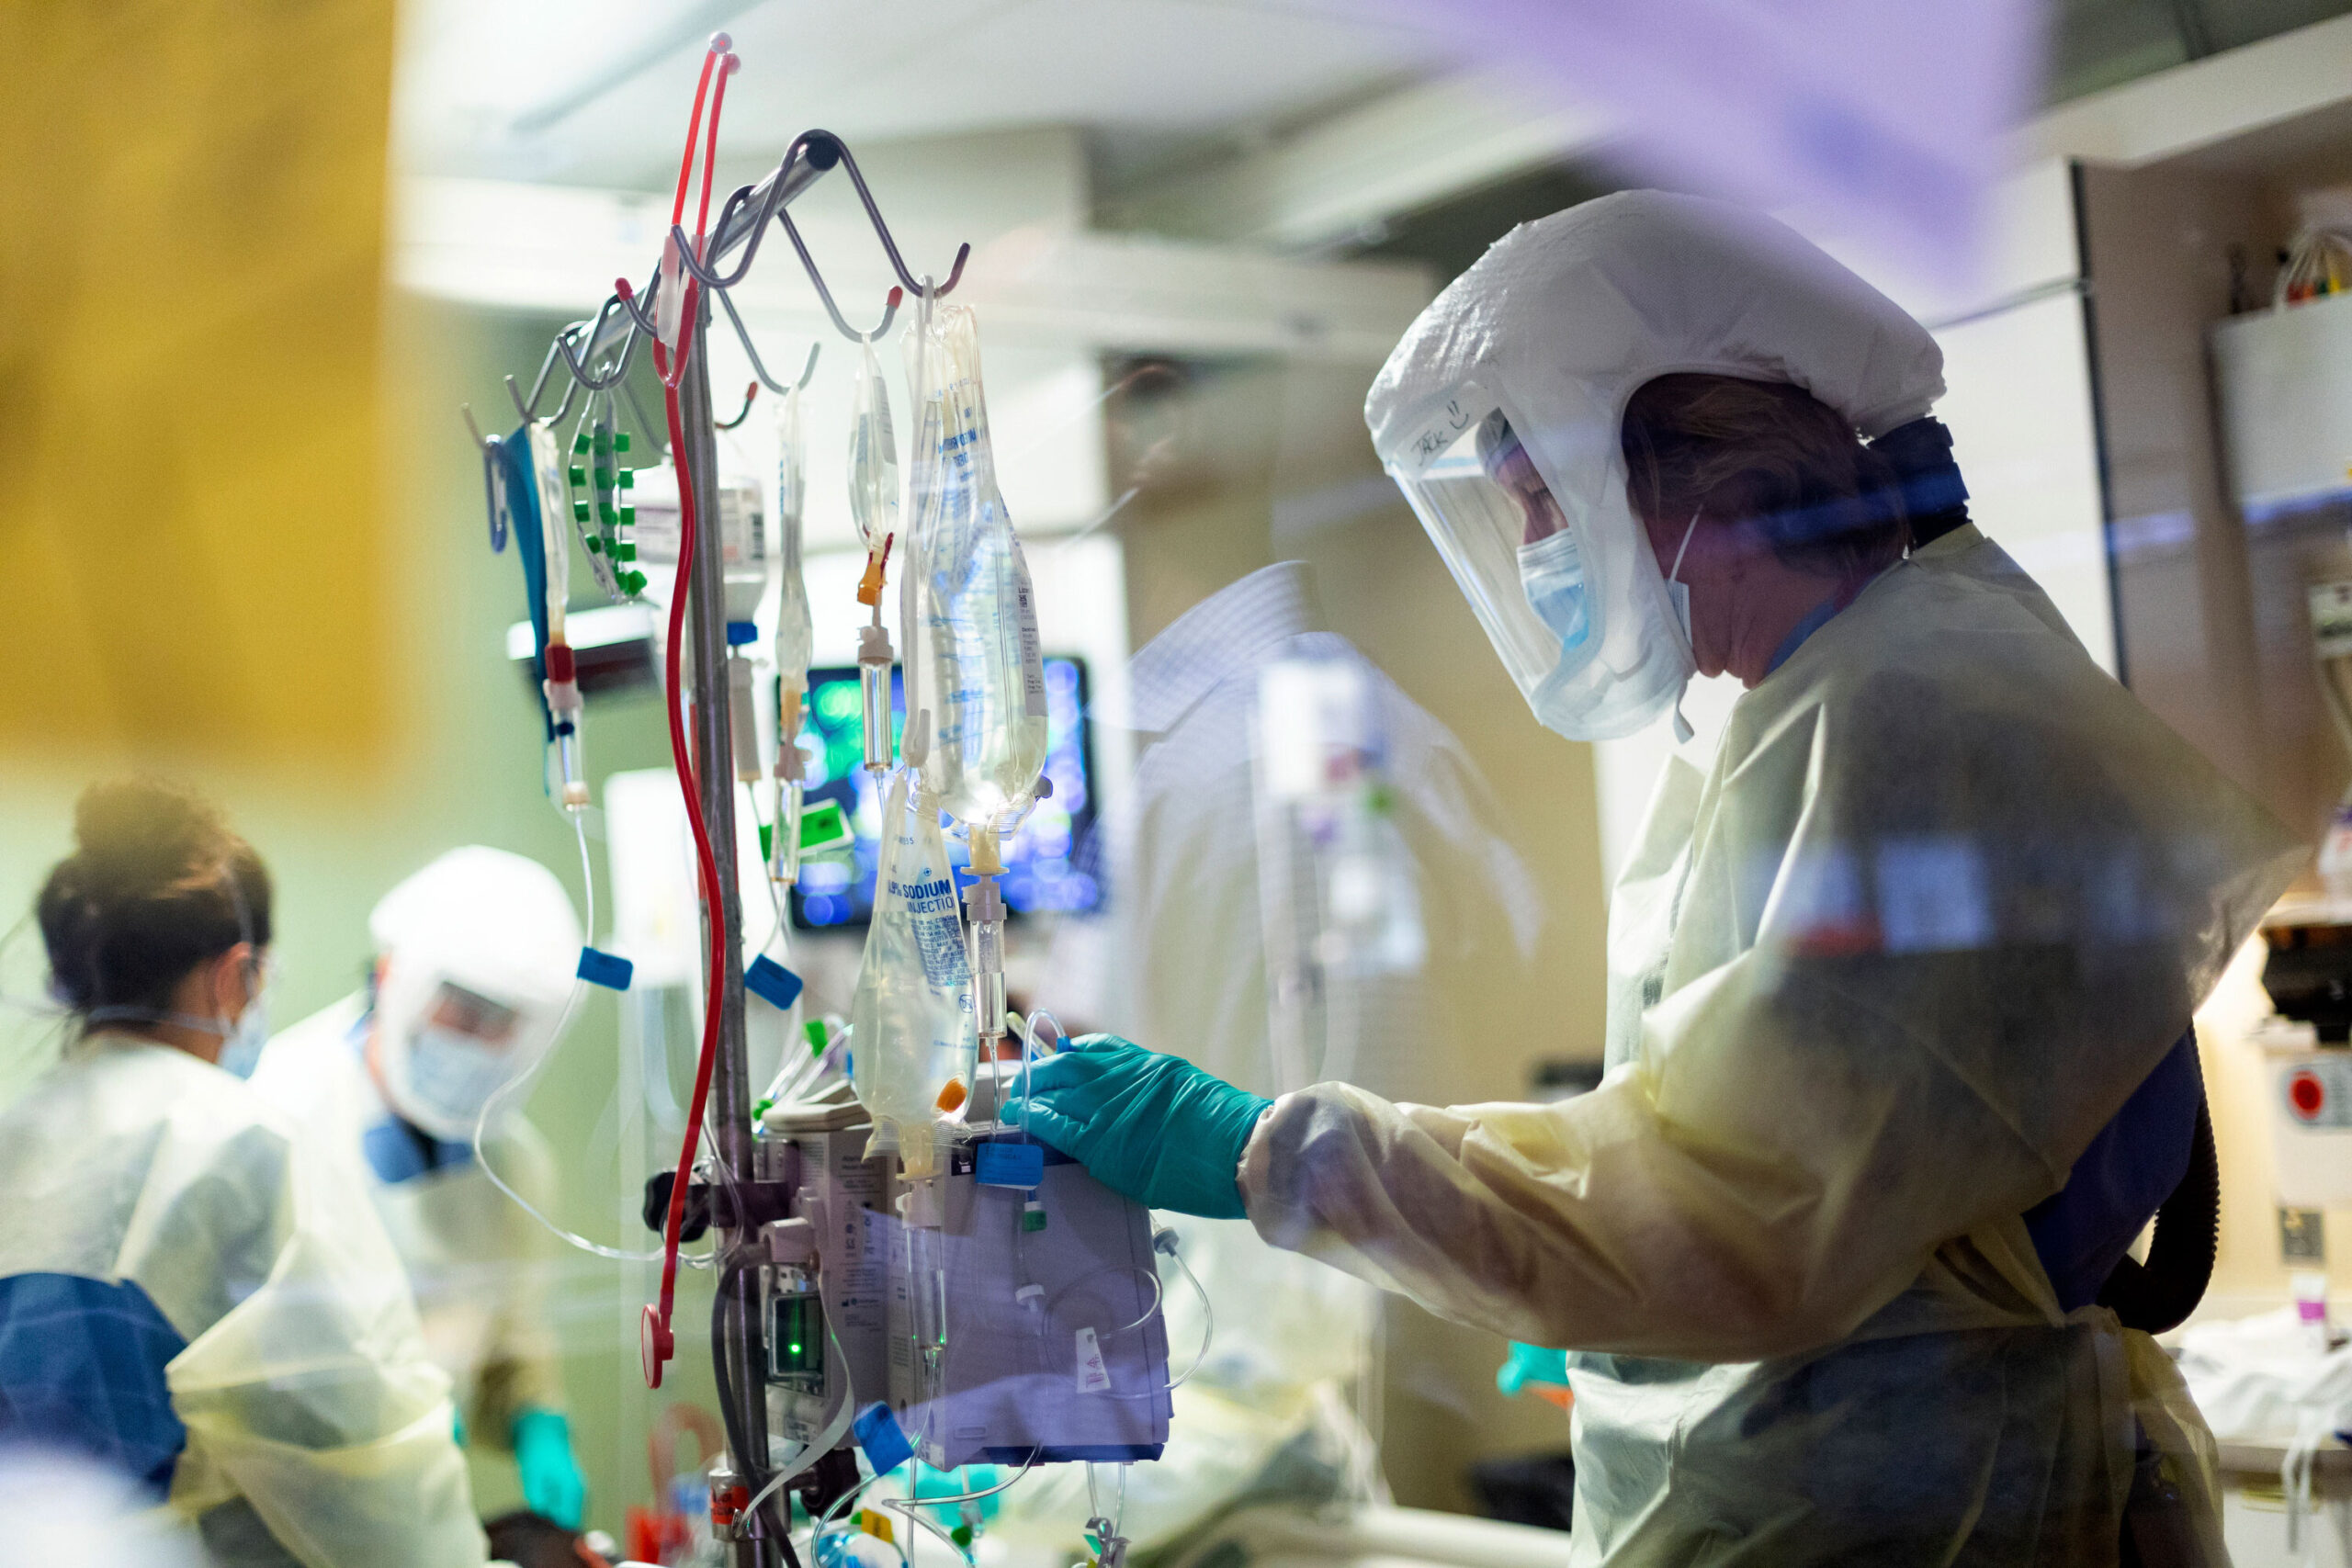 <i>Kyle Green/AP</i><br/>Jack Kingsley R.N. attends to a Covid-19 patient in the Medical Intensive care unit (MICU) at St. Luke's Boise Medical Center in Boise